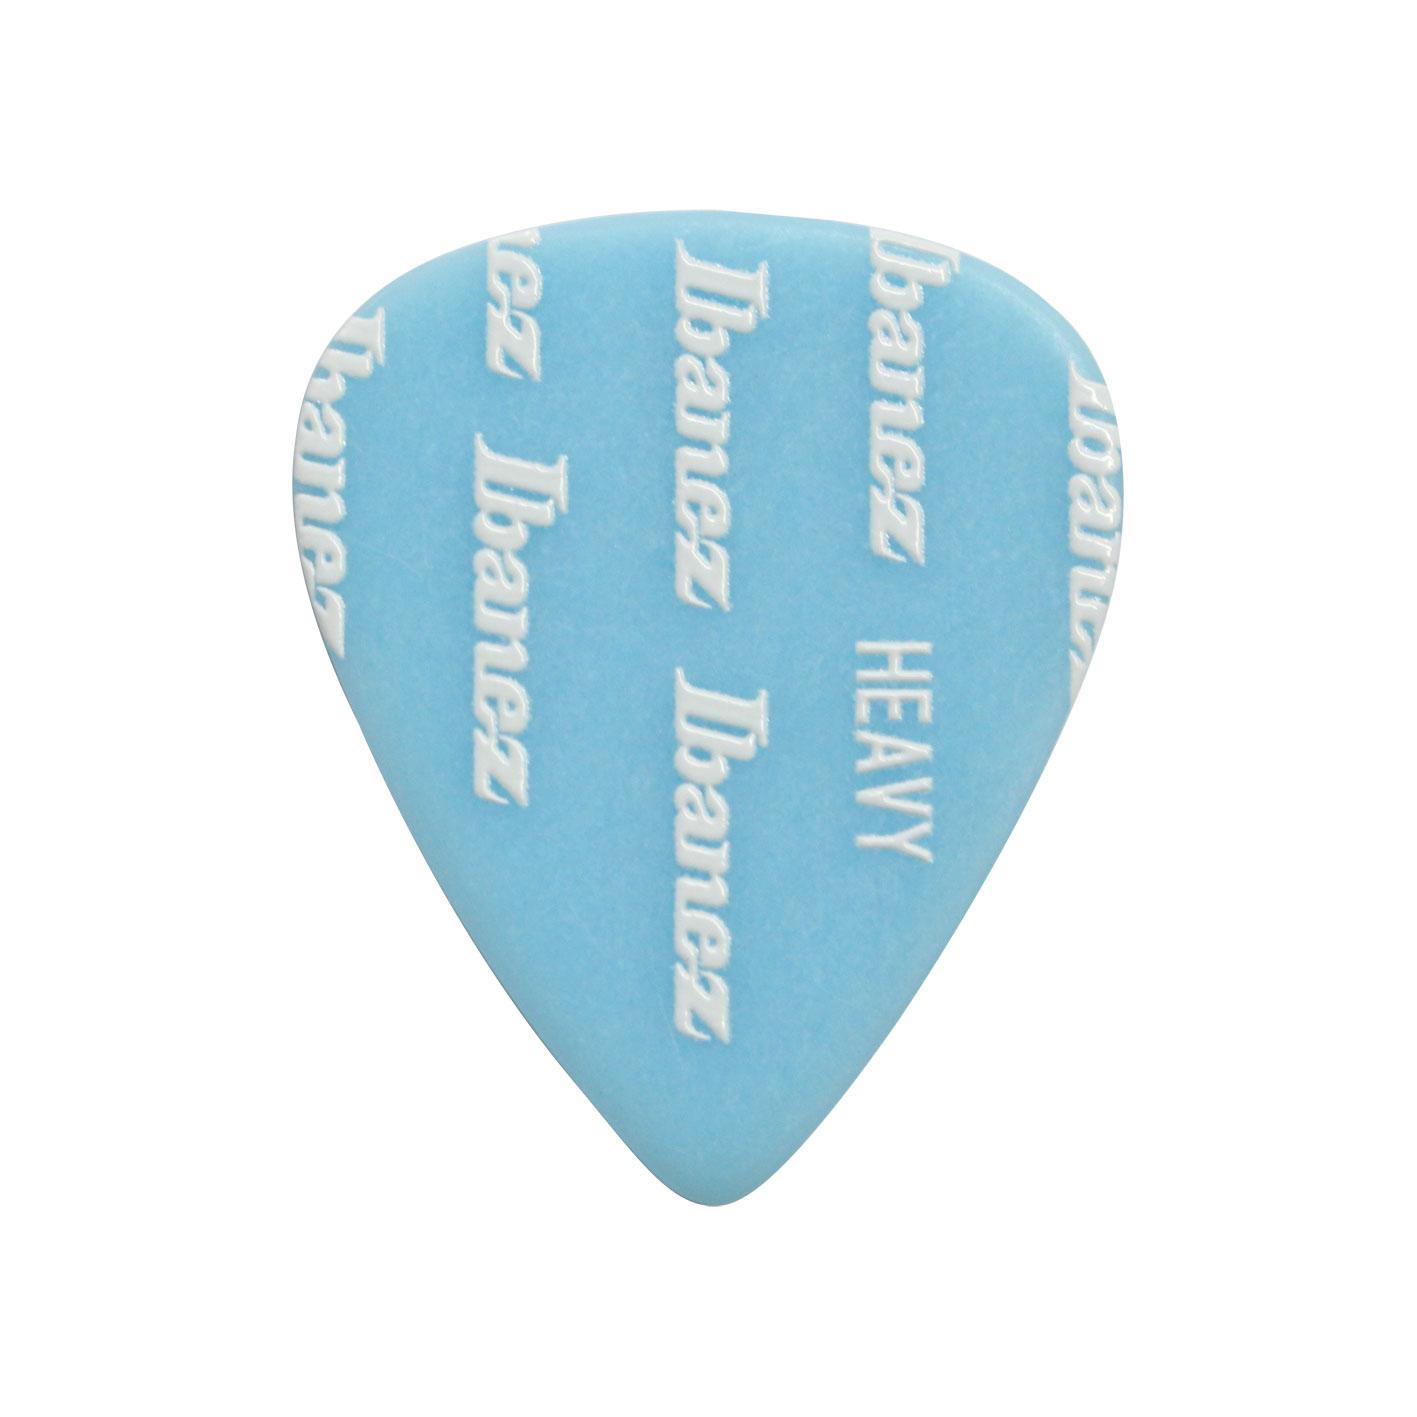 Ibanez PA14HLG-SB Grip Wizard Series Teardrop Pick Set